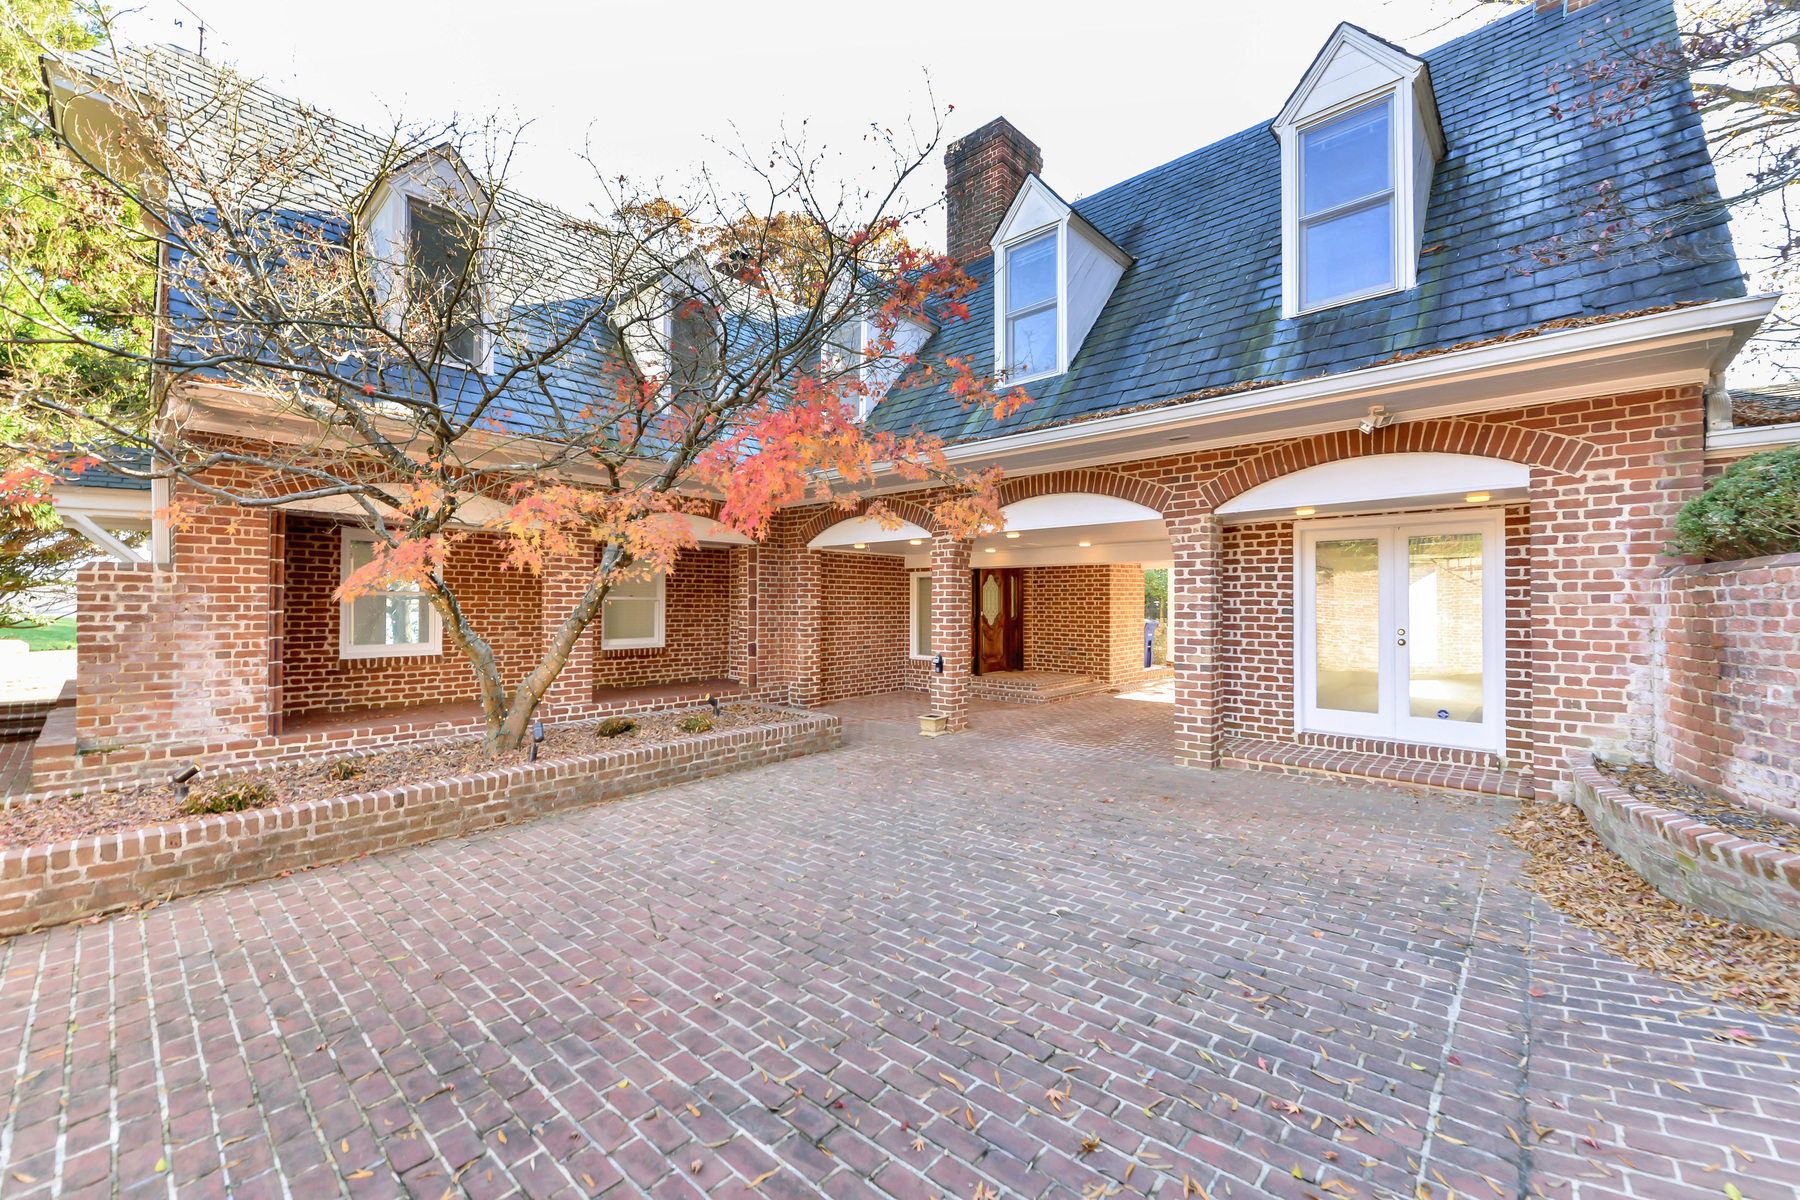 Additional photo for property listing at 883 Andalusia Drive, Alexandria  Alexandria, Virginia 22308 Estados Unidos